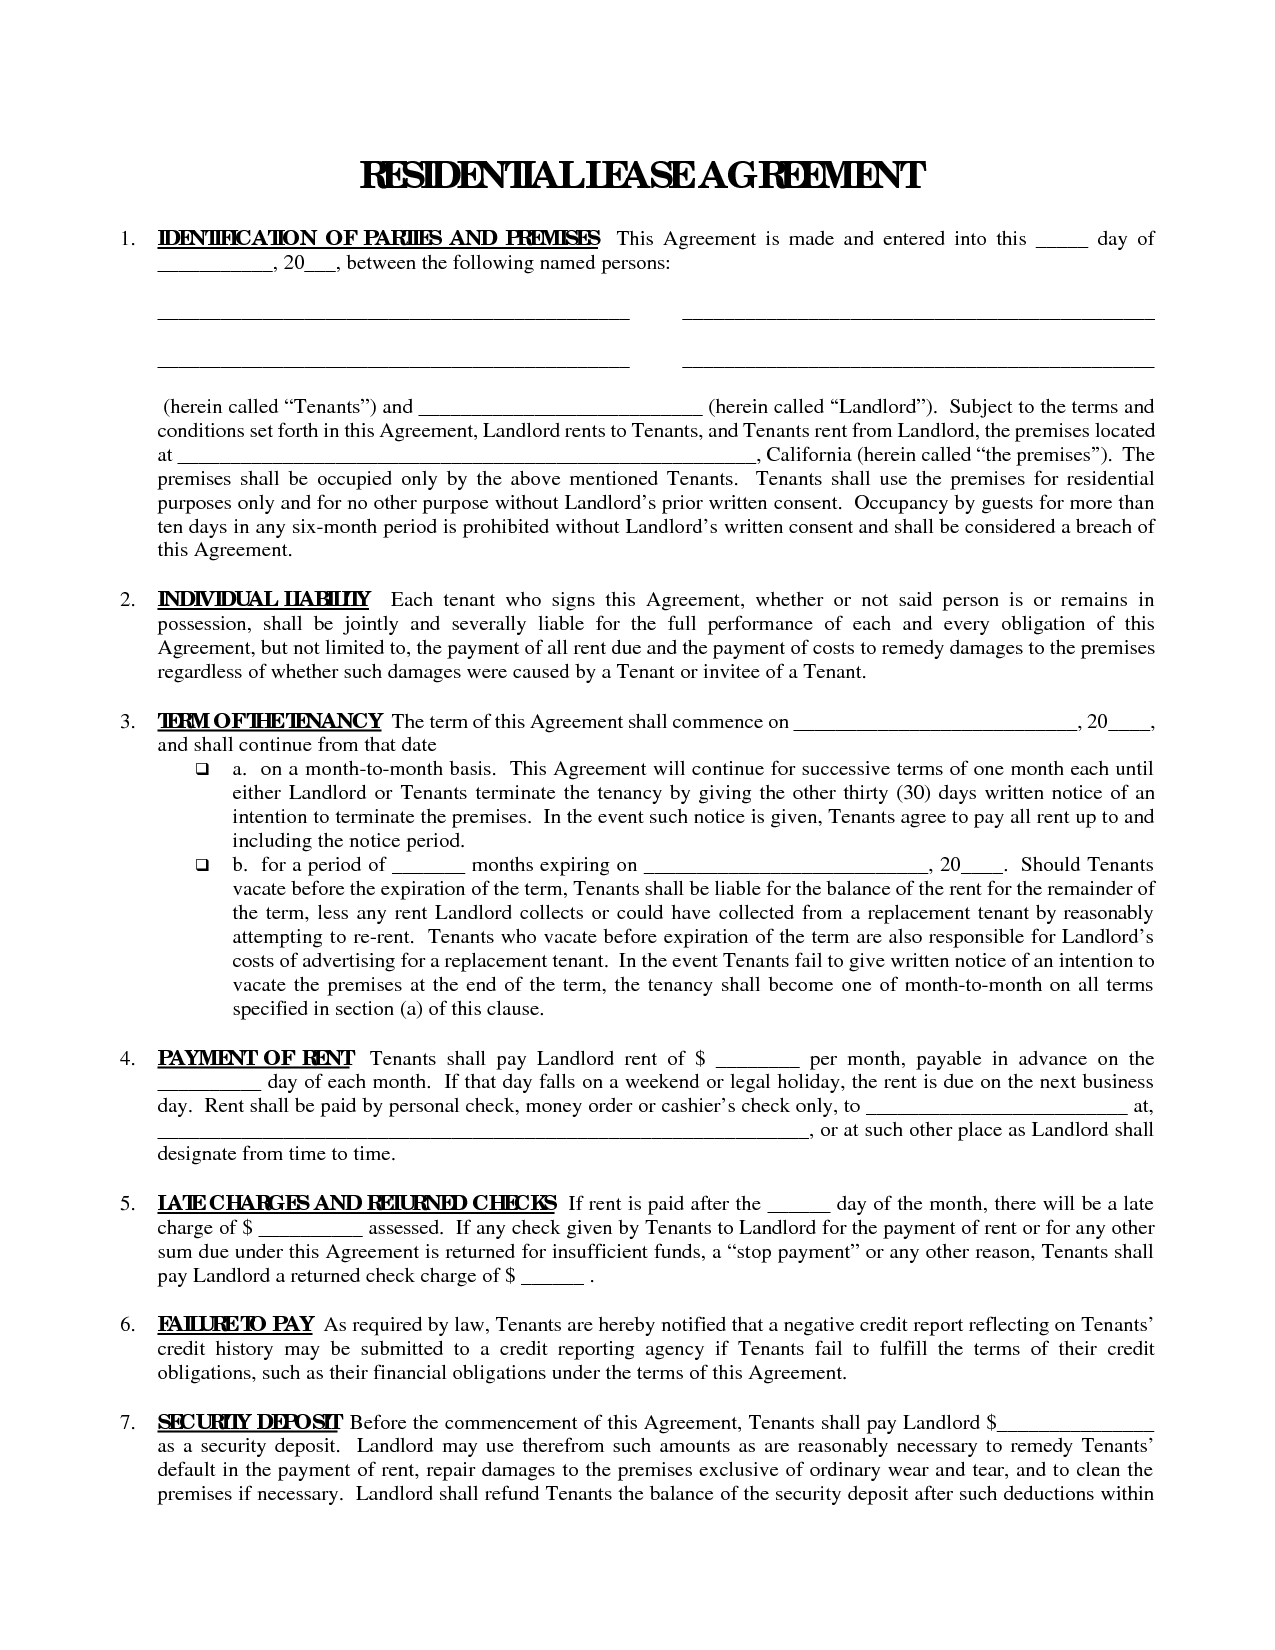 Printable Residential Free House Lease Agreement Residential Lease - Free online rental agreement template